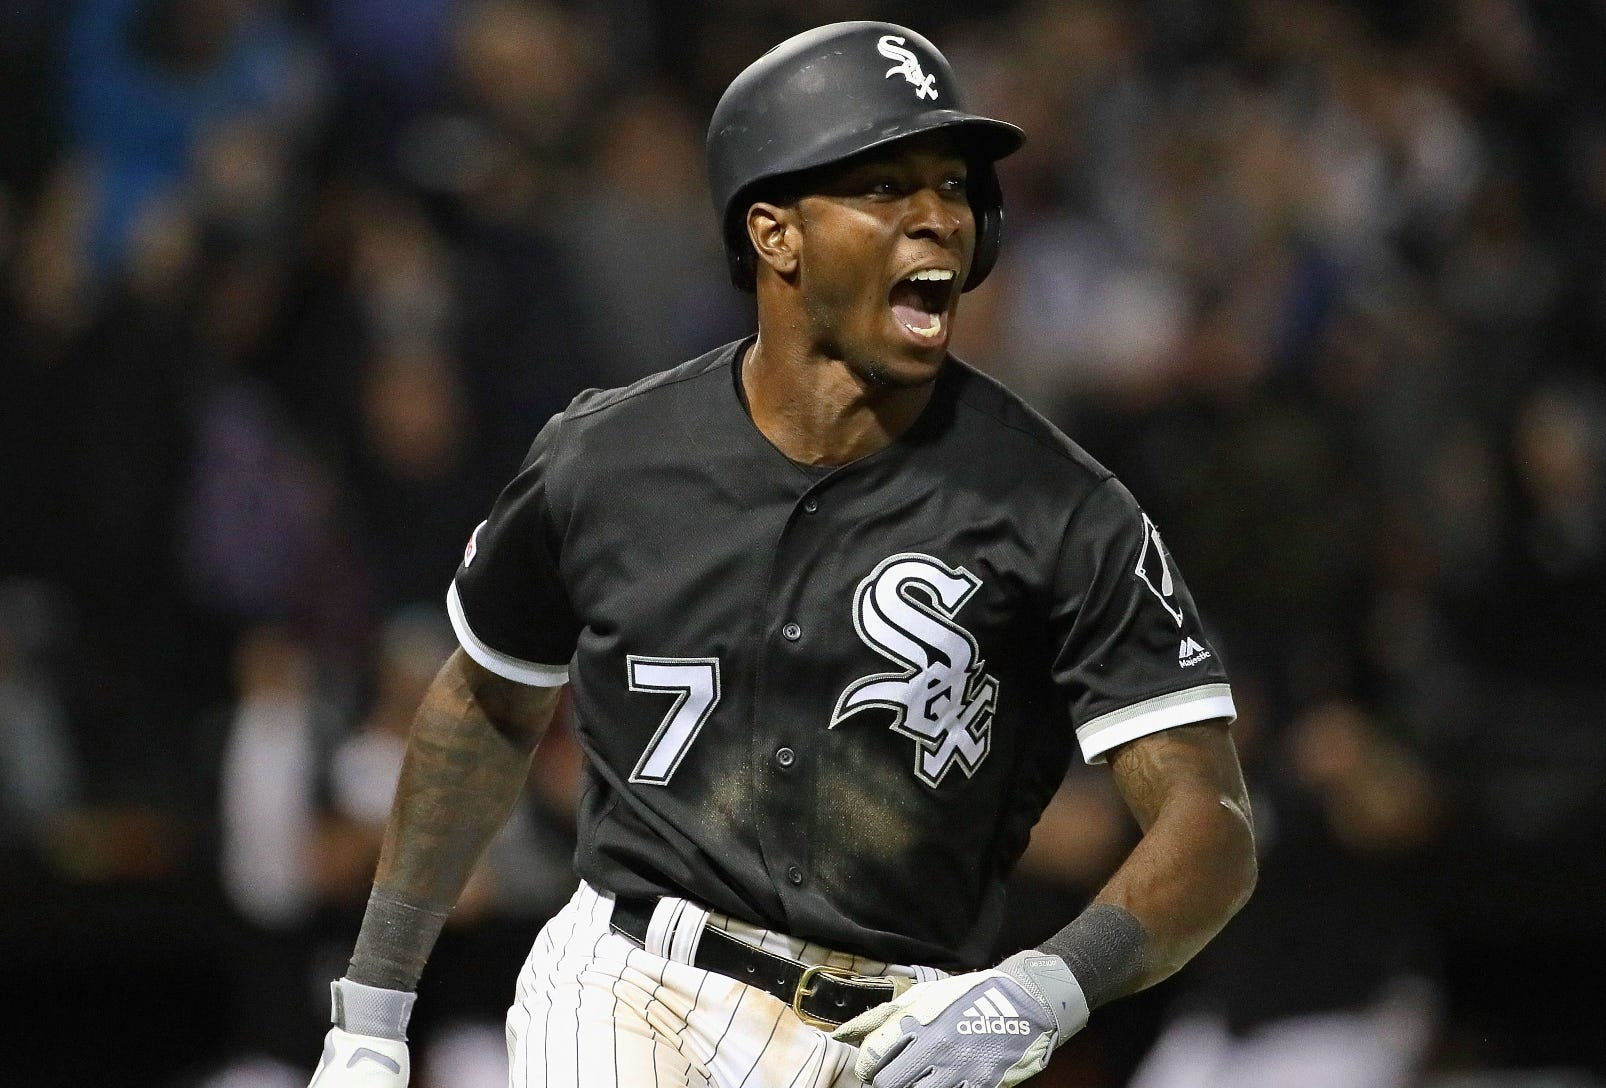 CHICAGO, ILLINOIS - APRIL 26: Tim  Anderson #7 of the Chicago White Sox celebrates after hitting a walk-off home run in the 9th inning against the Detroit Tigers at Guaranteed Rate Field on April 26, 2019 in Chicago, Illinois. The White Sox defeated the Tigers 12-11. (Photo by Jonathan Daniel/Getty Images)